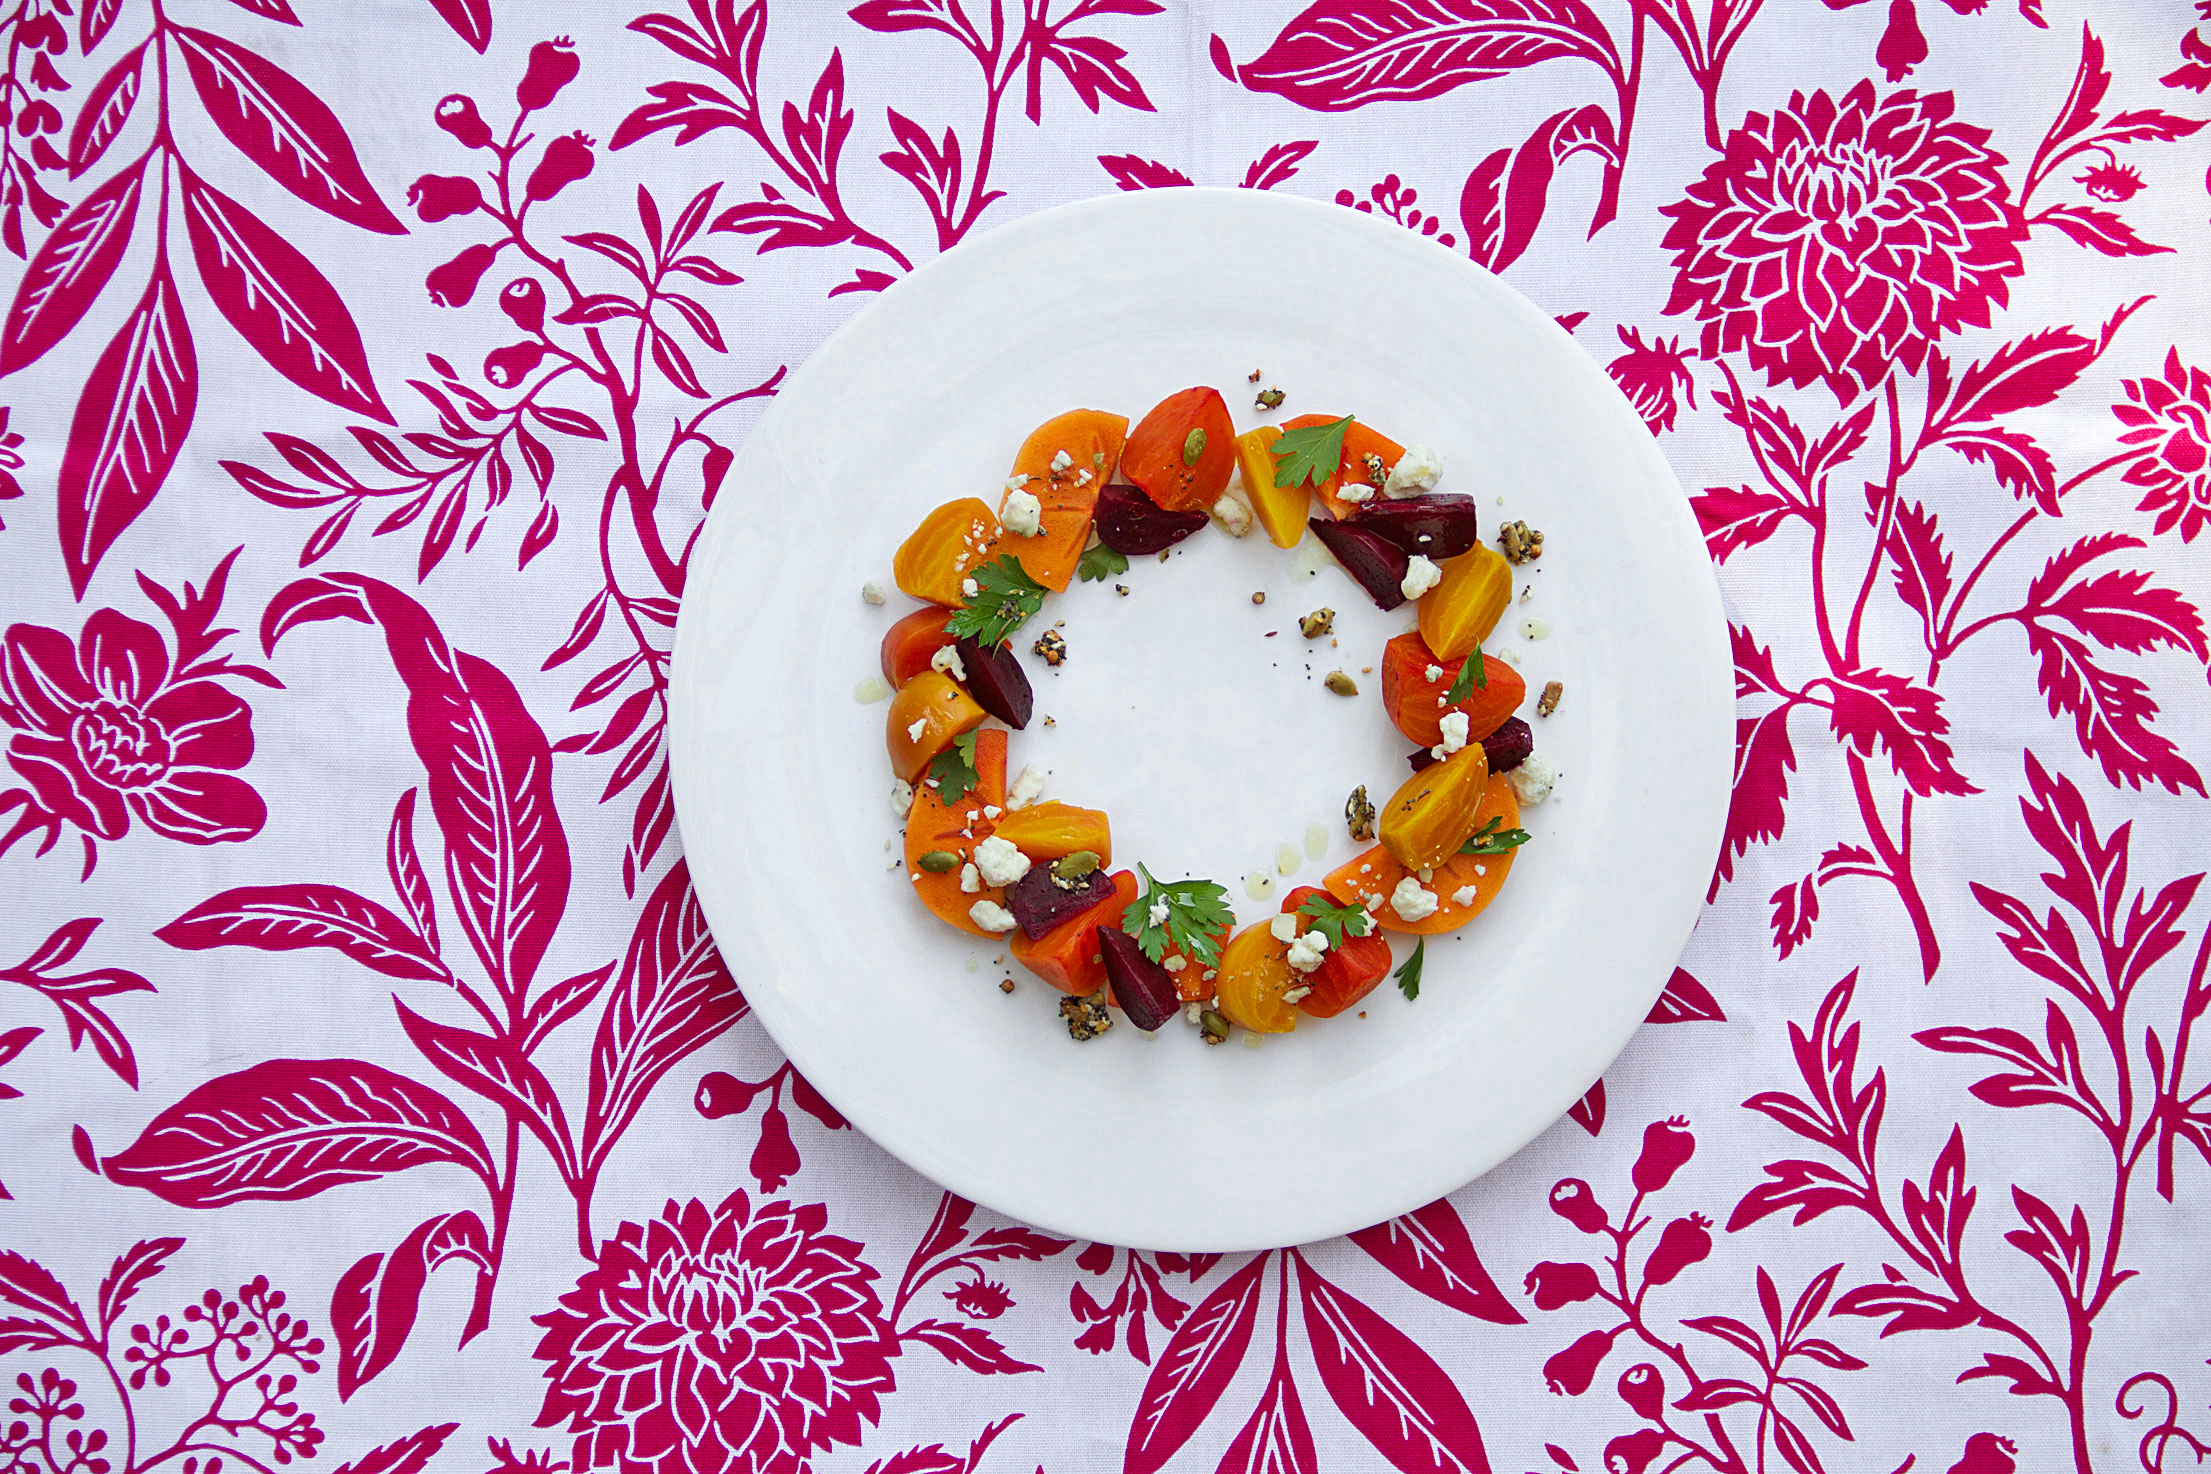 Beet and Persimmon Salad with Blue Cheese and Crunchy Seeds